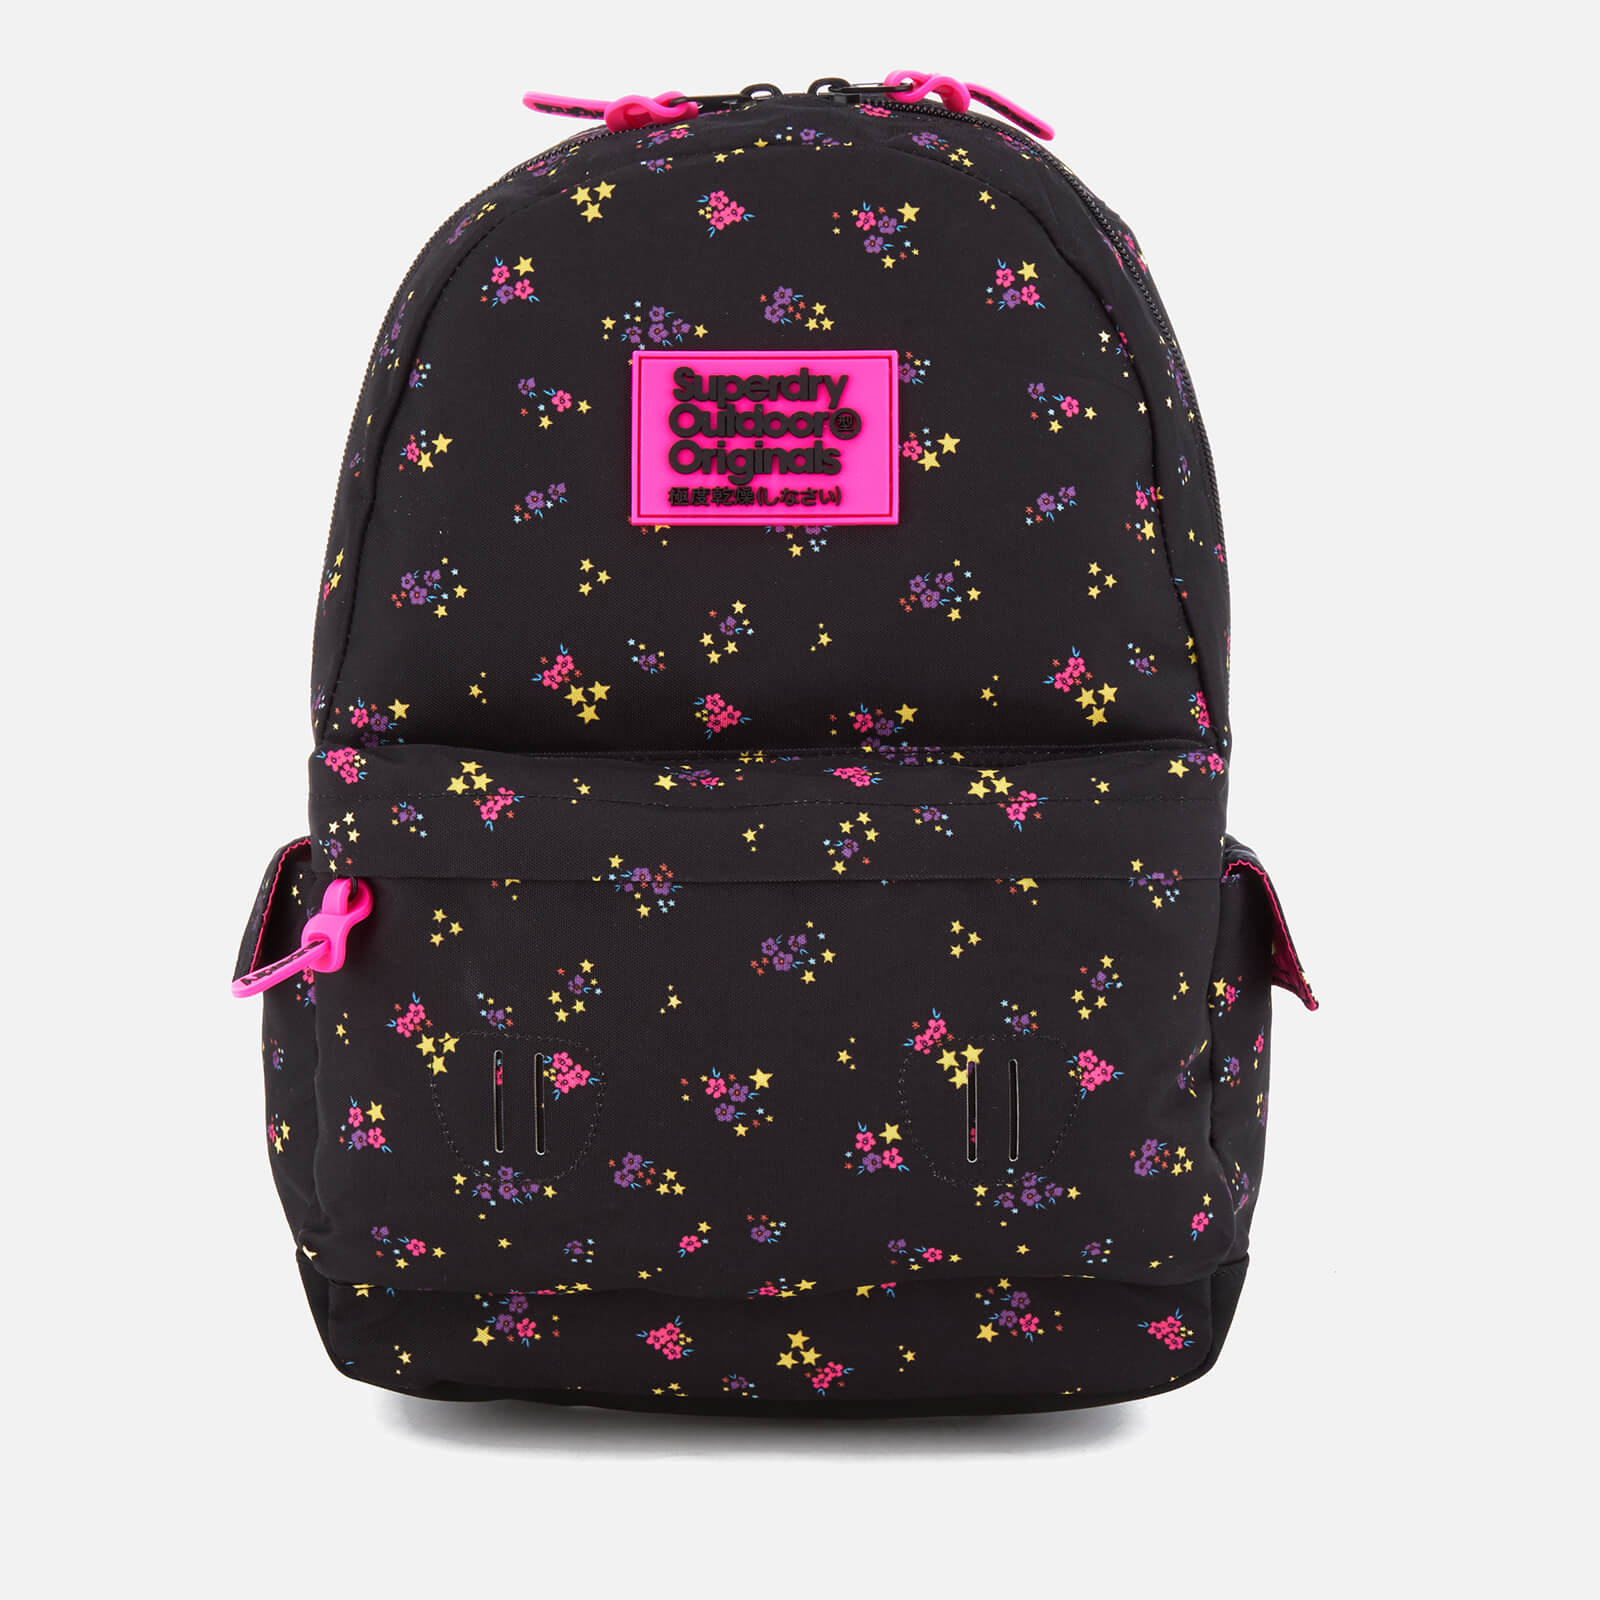 a2216a5ad1e Superdry Women's Ditsy Star Print Edition Montana Backpack - Ditsy Star  Clothing | TheHut.com